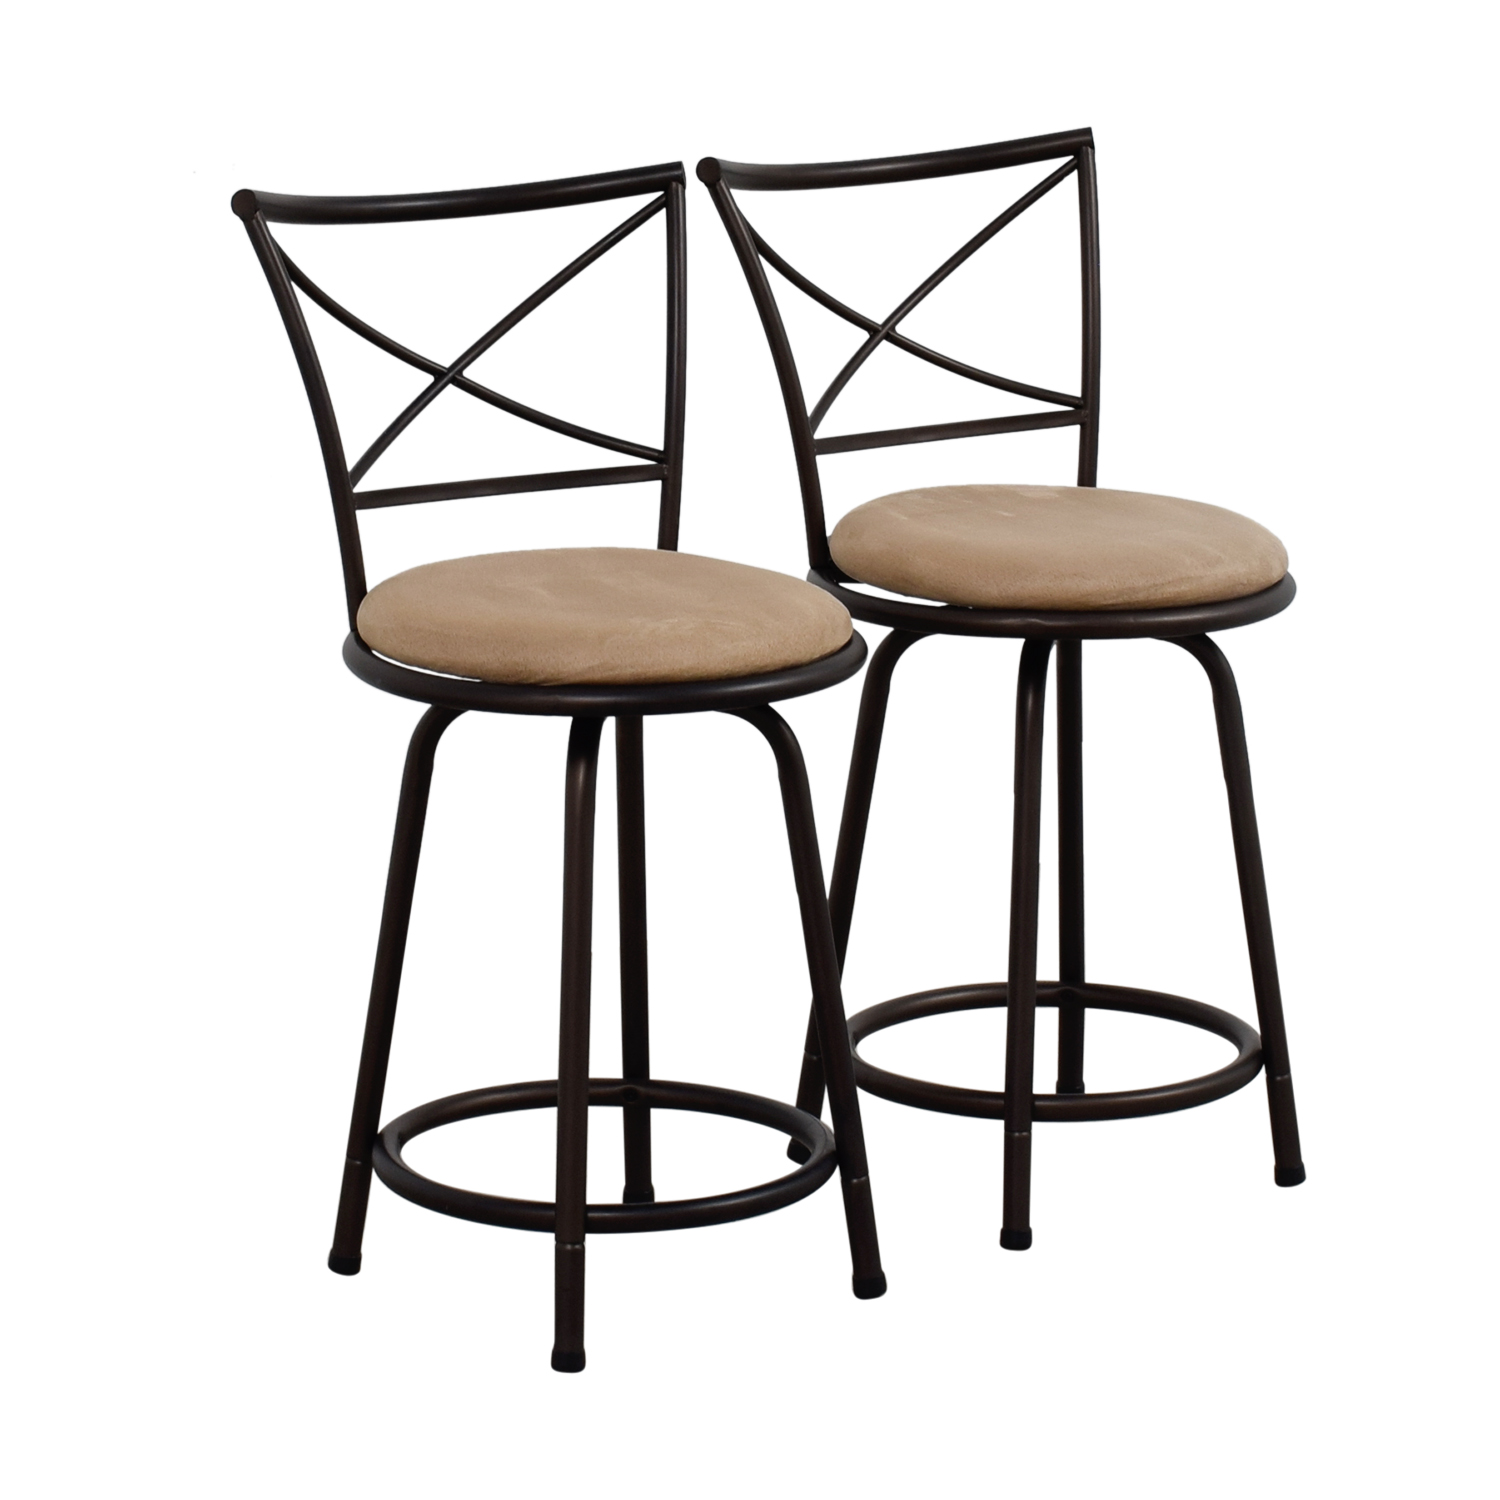 Big Lots Dining Room Chairs: Big Lots Big Lots Tan Cushioned Swivel Barstools / Chairs